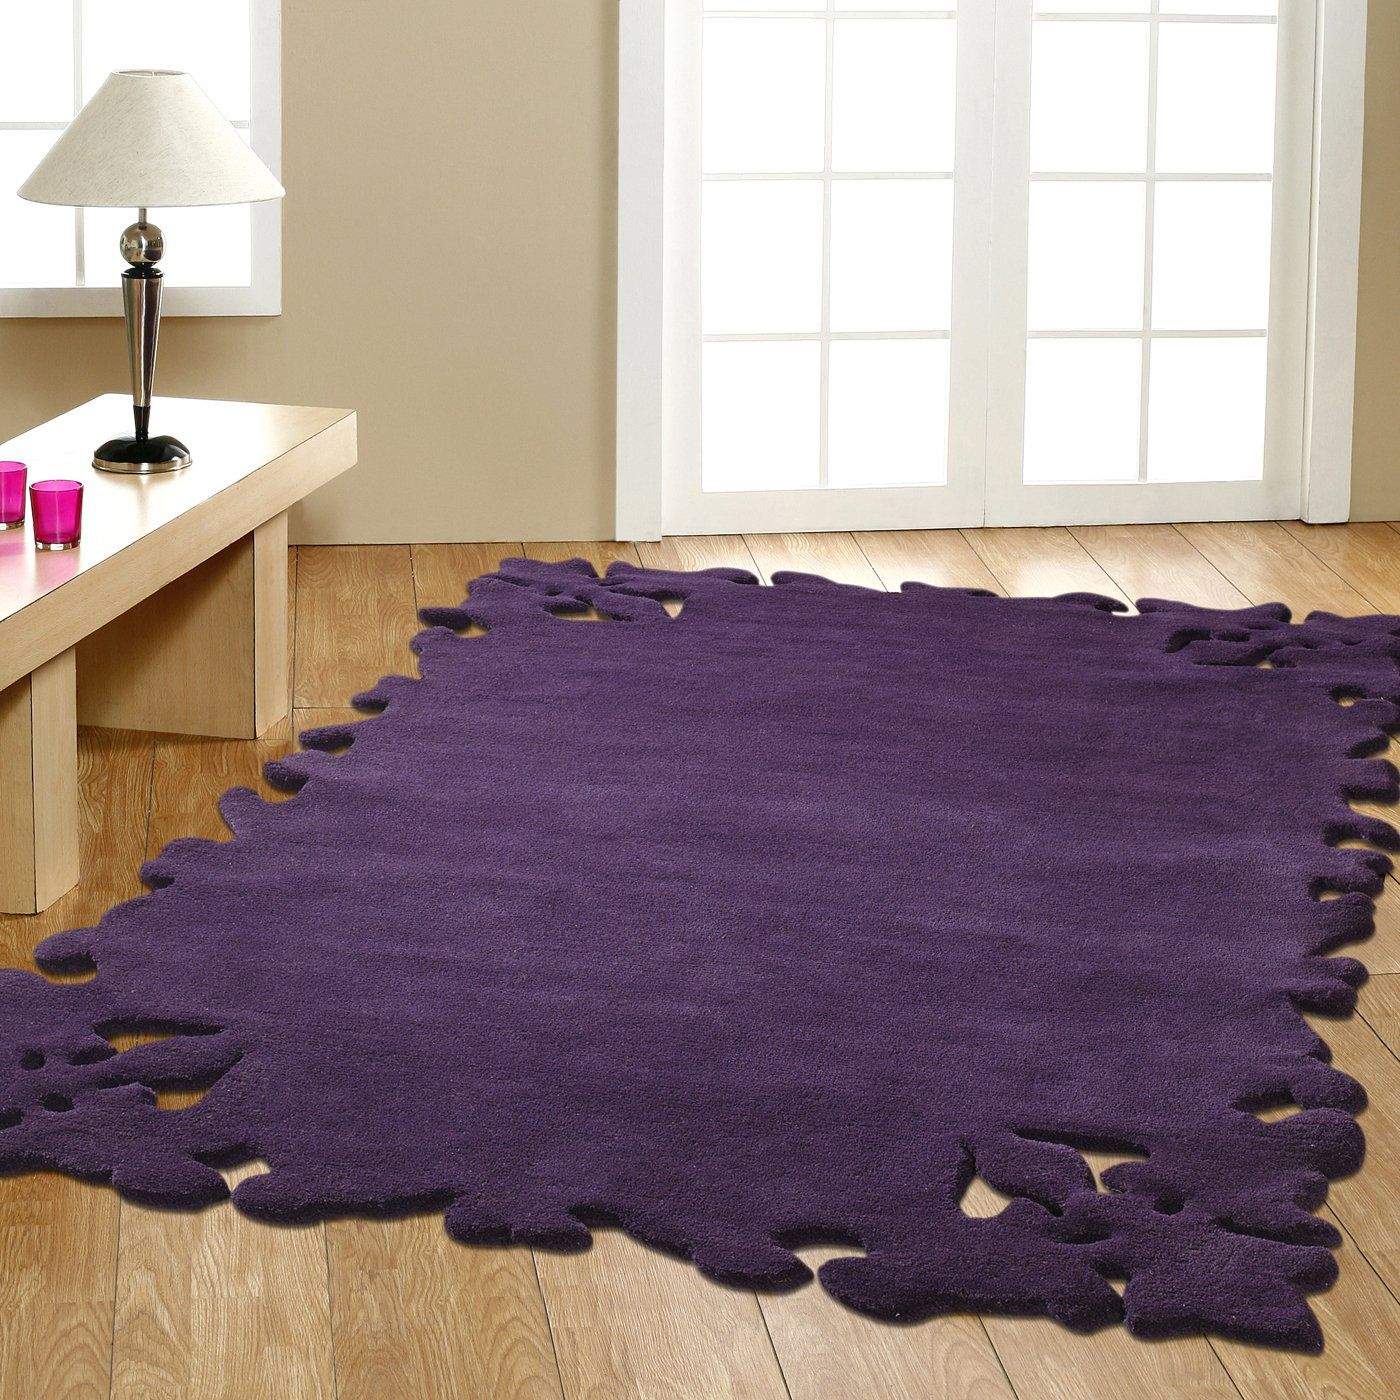 Marvelous Modella Purple Area Rug ~ For My Bedroom